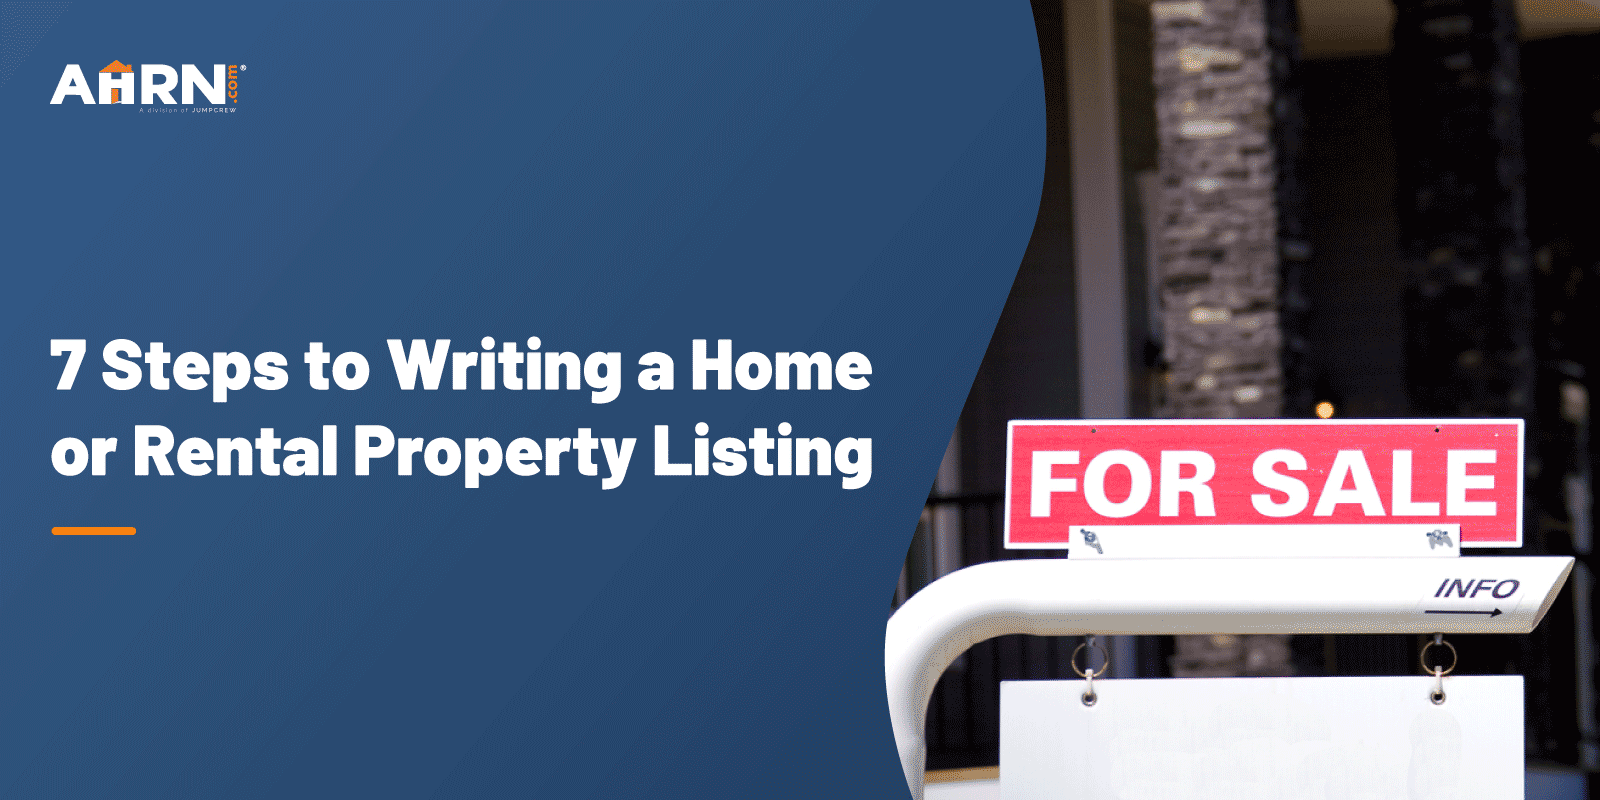 writing a Home or Rental Property Listing